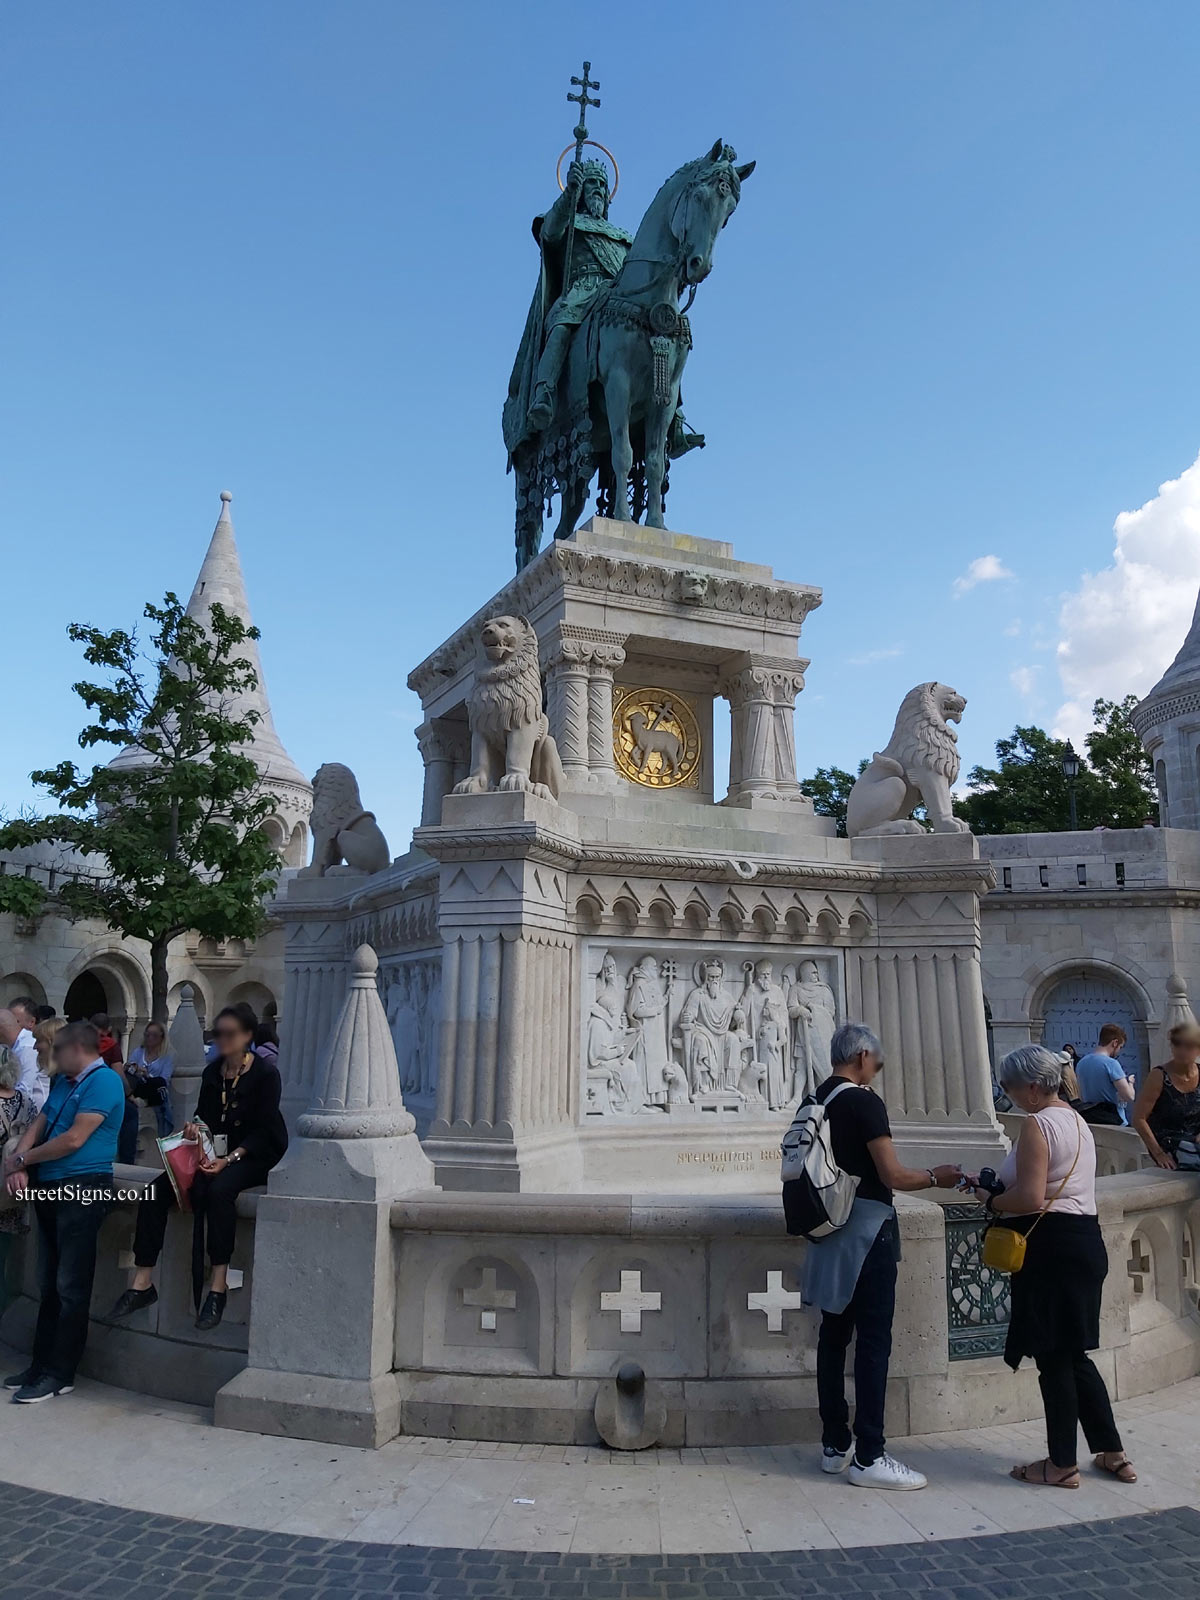 Budapest - The statue of King Saint Stephen's at Fisherman's Bastion